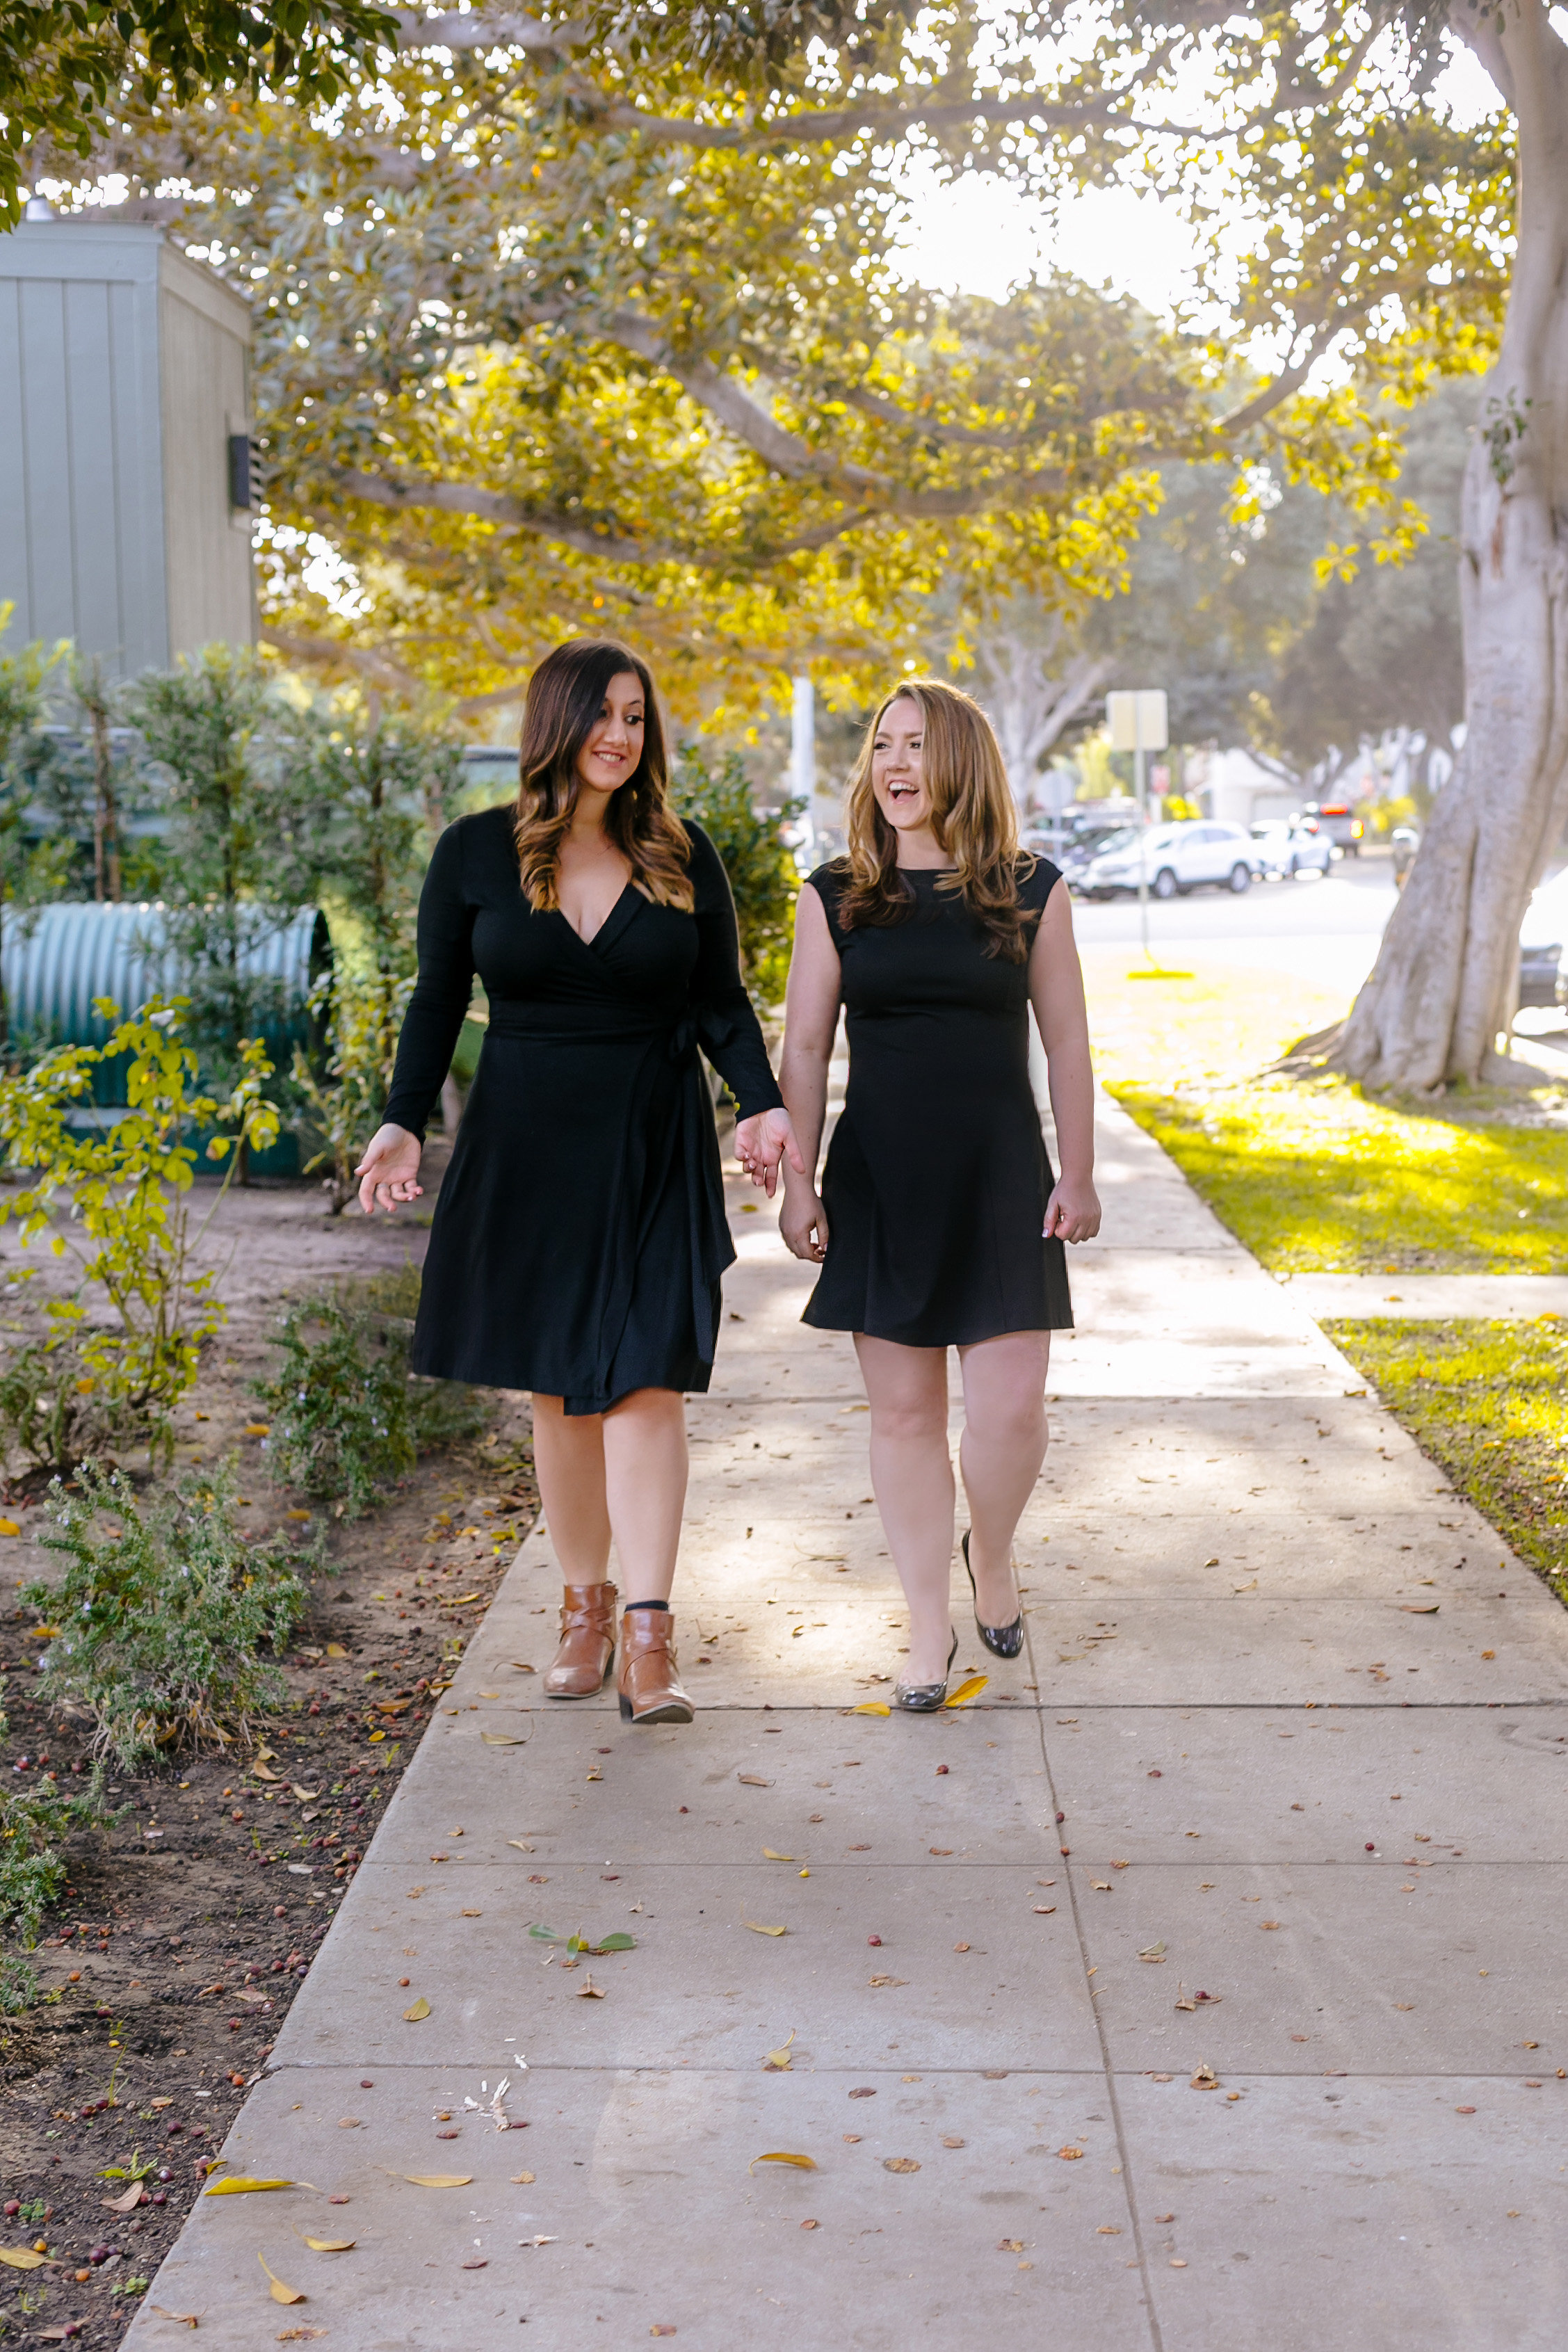 A photo of Stephanie and Rachel walking down the street.